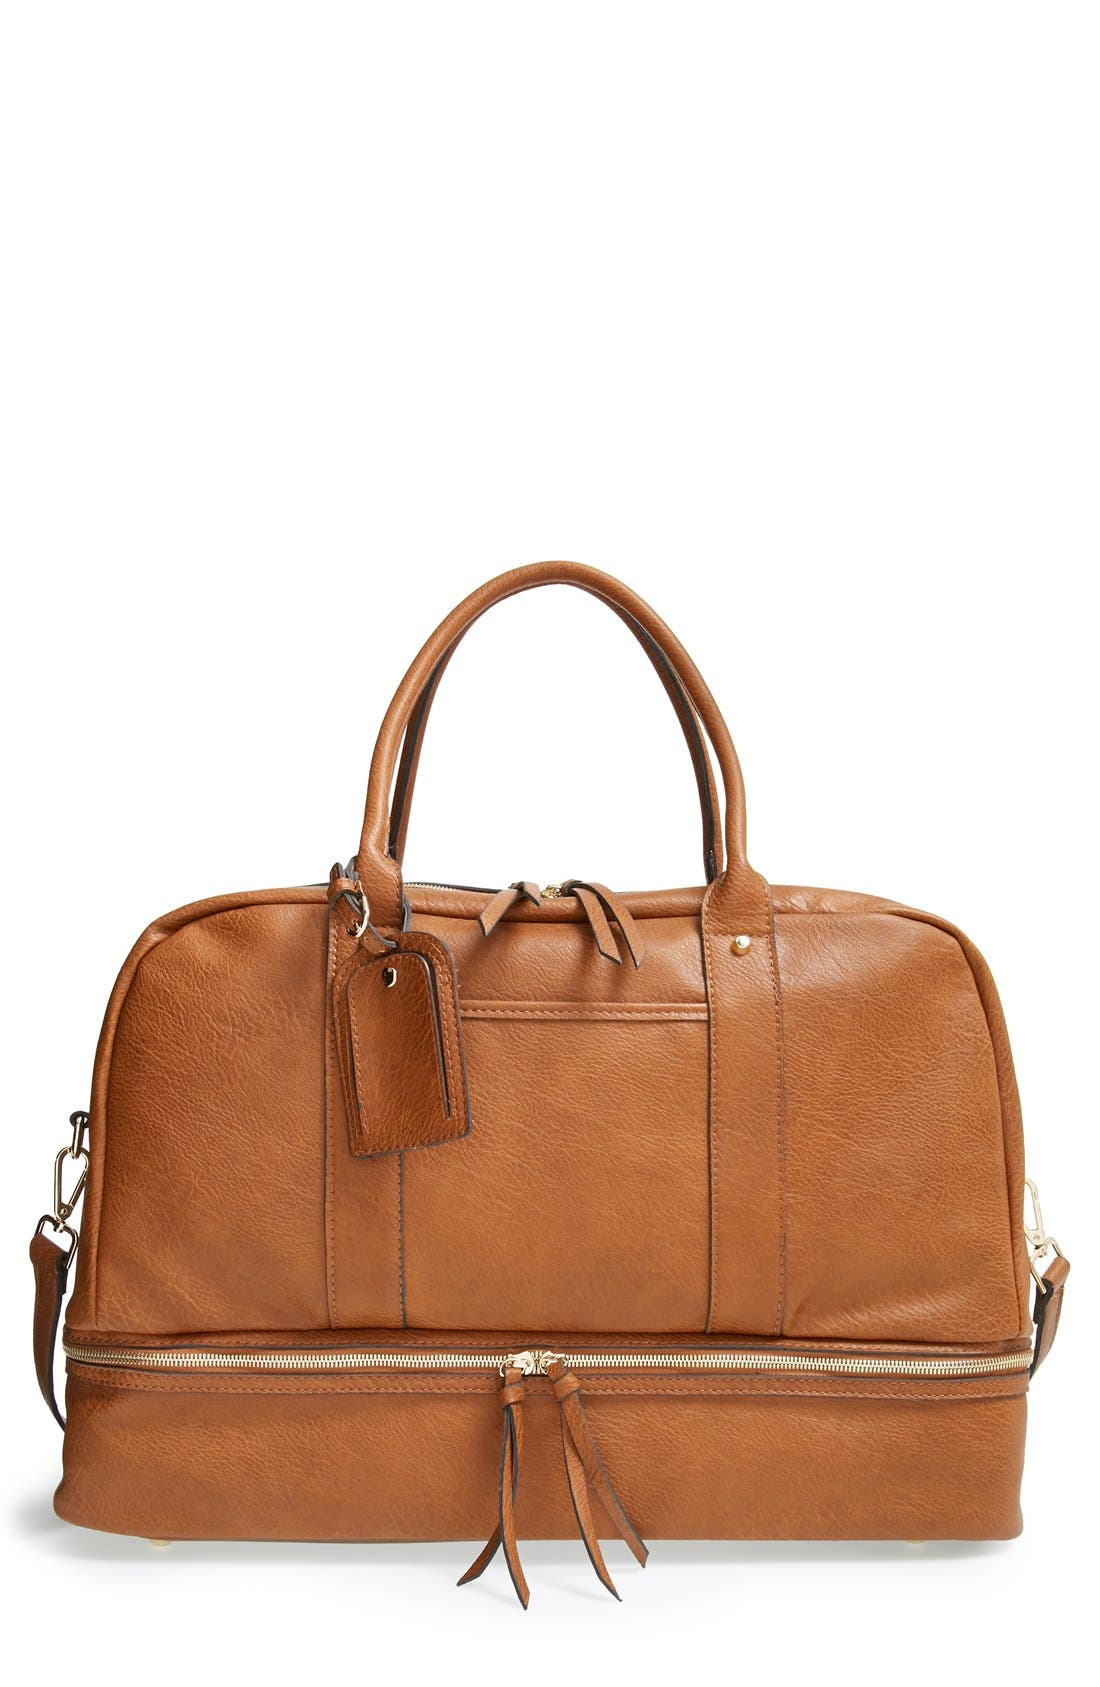 SOLE SOCIETY, Mason Weekend Bag, Main thumbnail 1, color, COGNAC